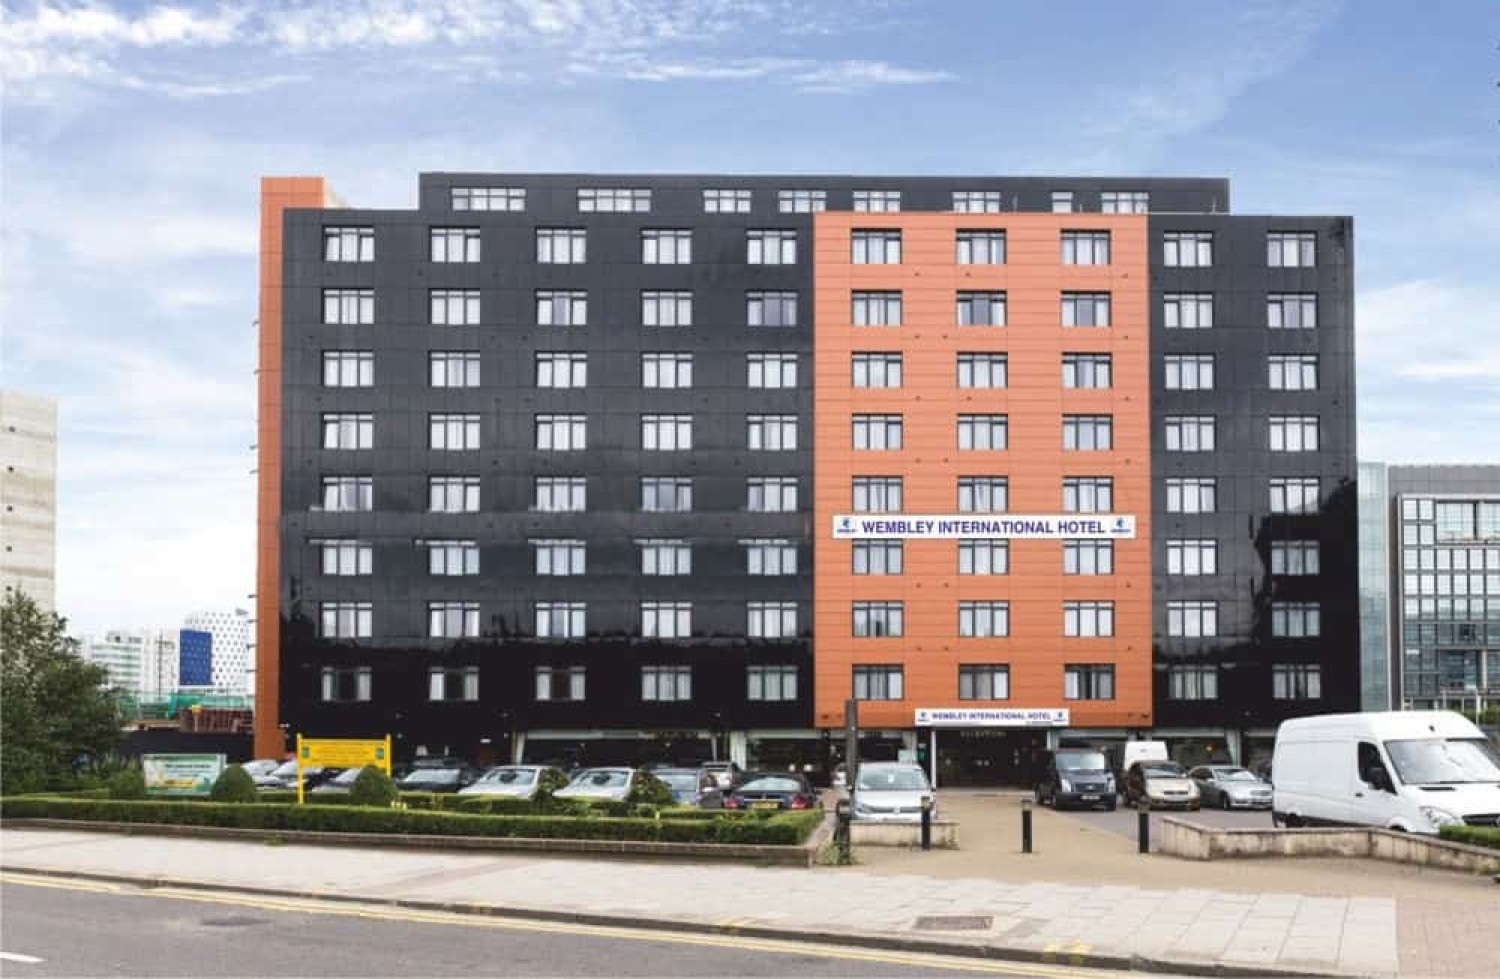 Nearby Hotels - Wembley International Hotel